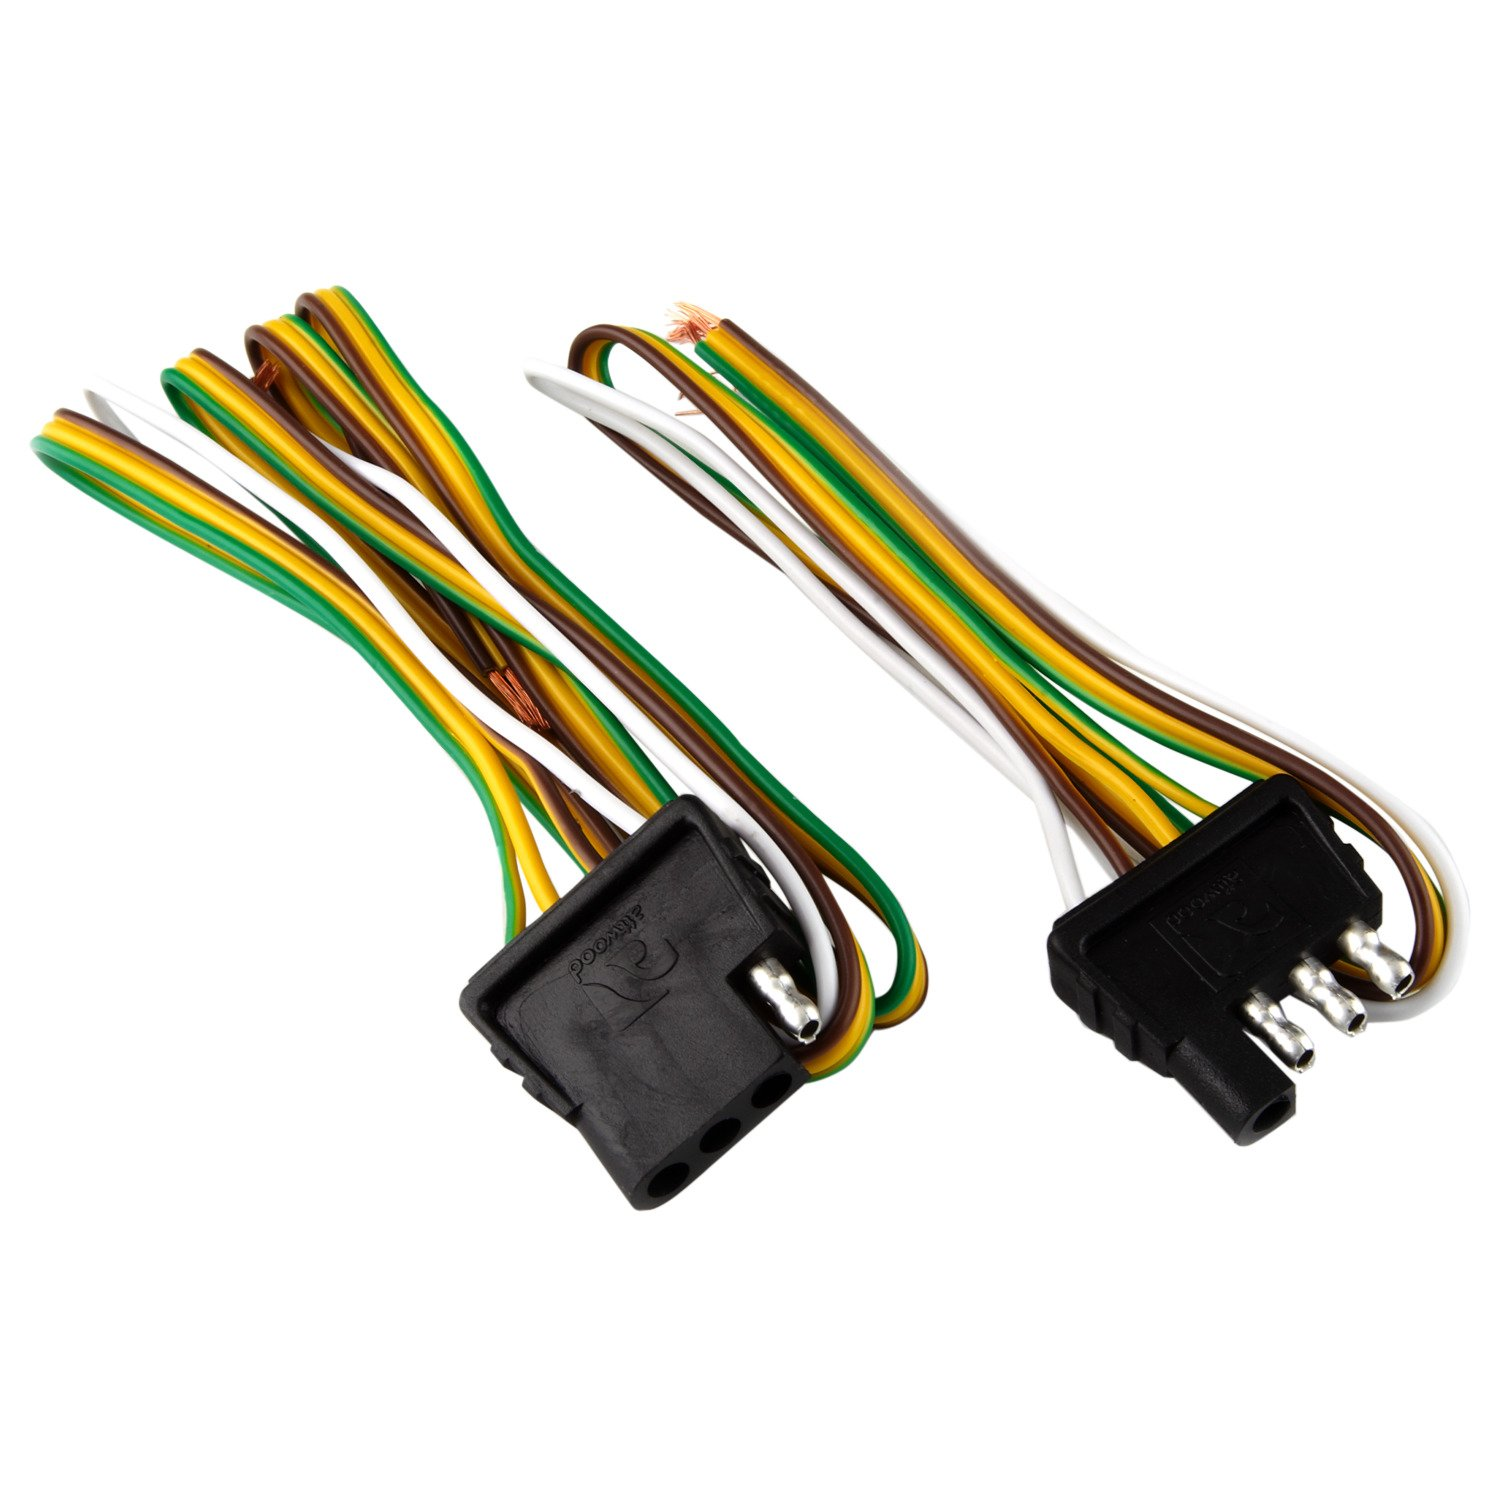 small resolution of attwood 4 way flat wiring harness kit for vehicles and trailers u haul trailer wiring flat 4 wiring harness